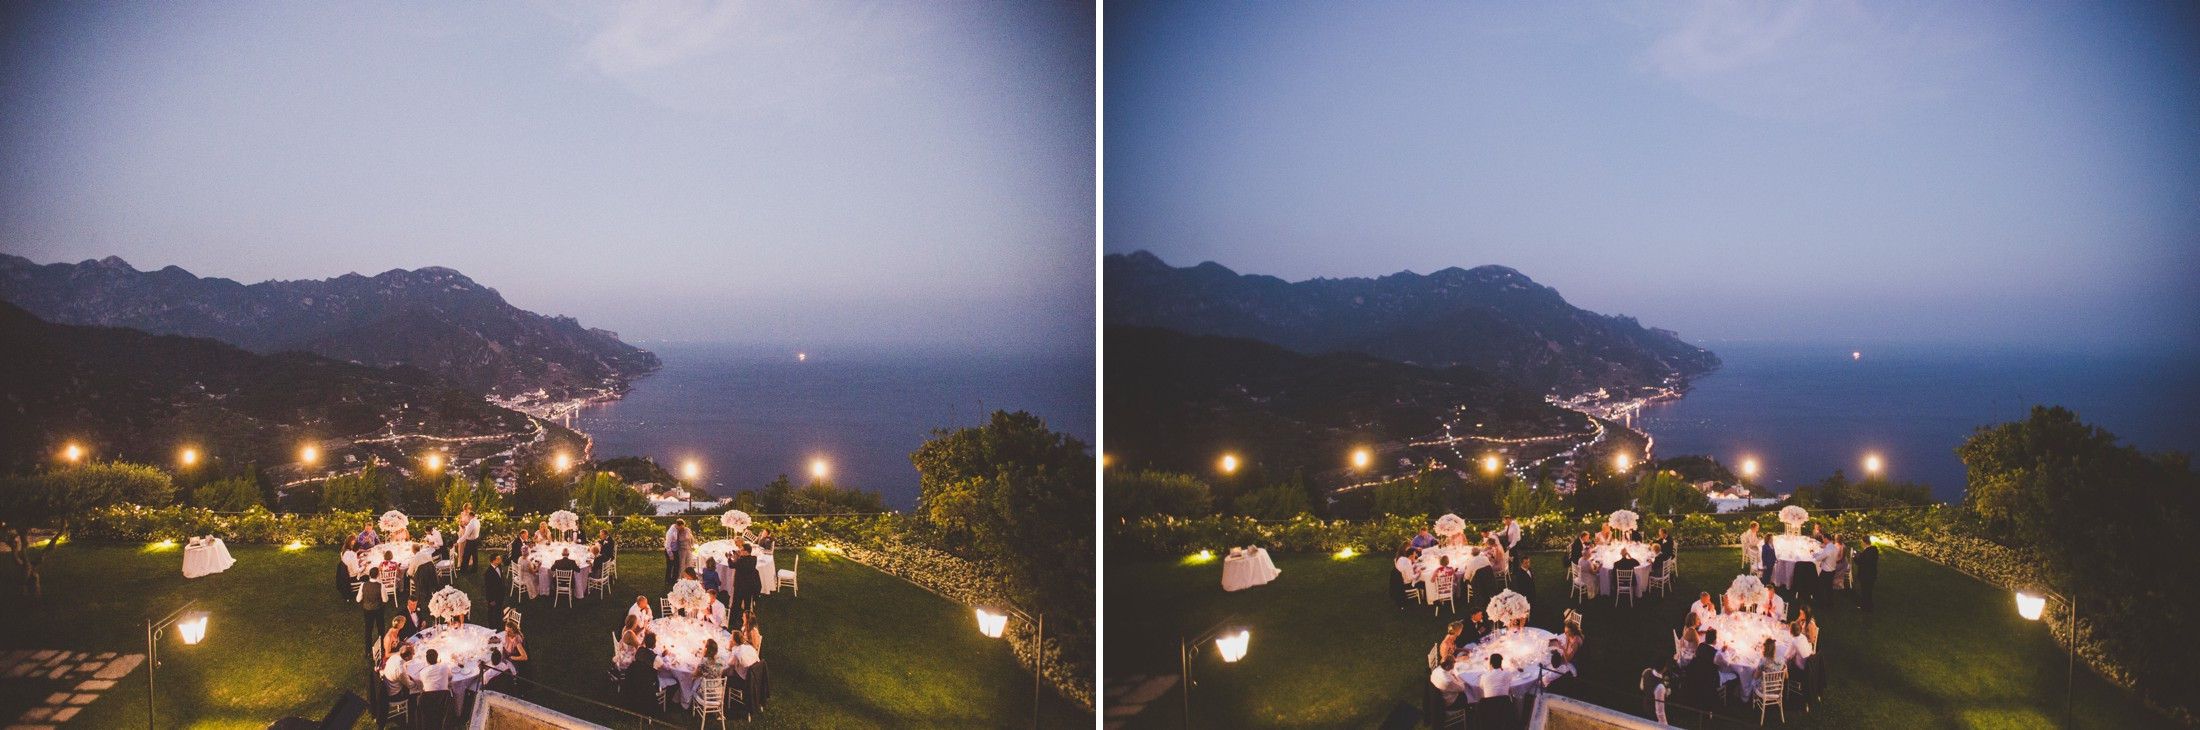 wedding in ravello collage two moments from the dinner at the hotel caruso